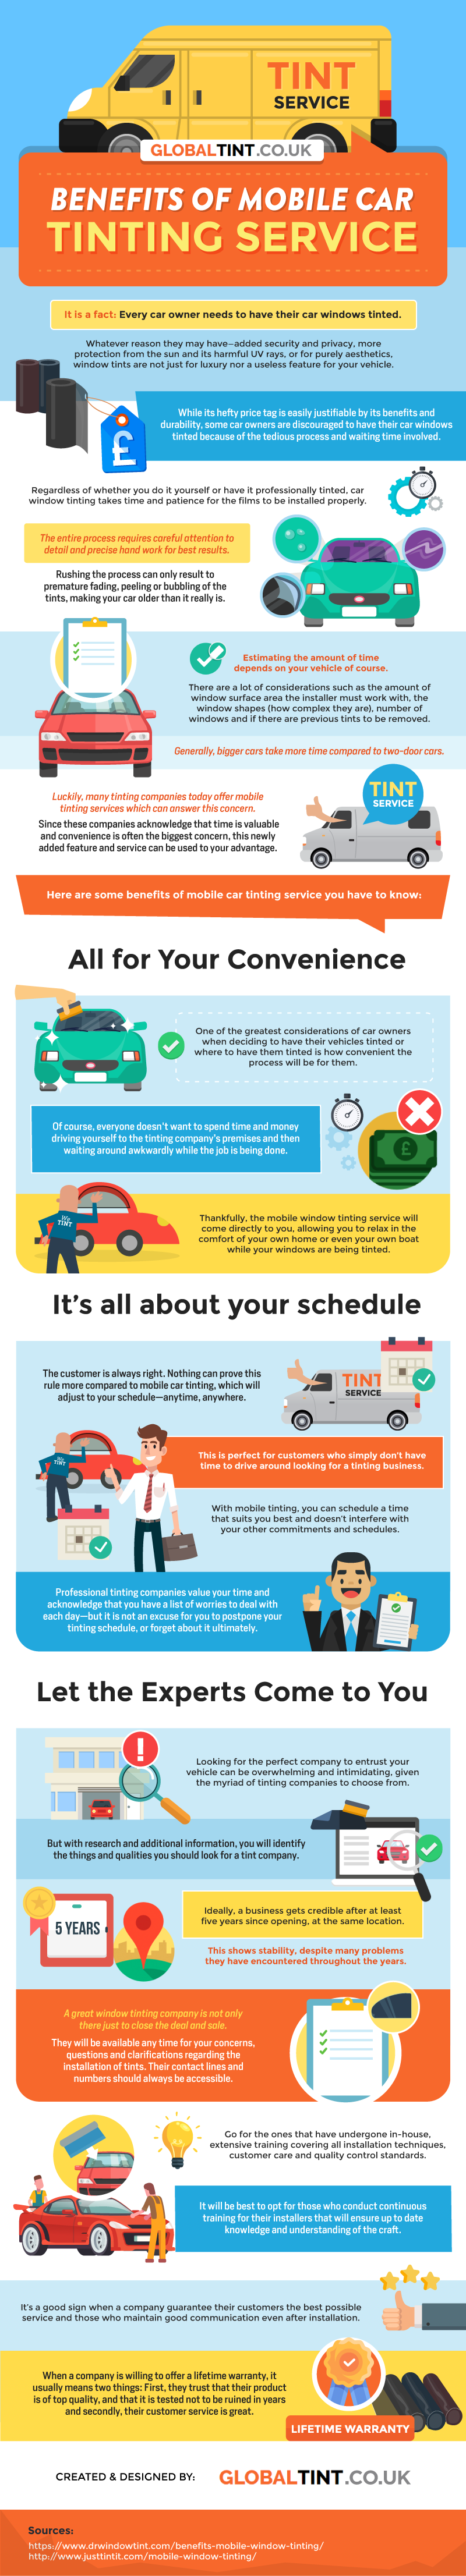 Benefits Of Mobile Car Tinting Service - Infographic